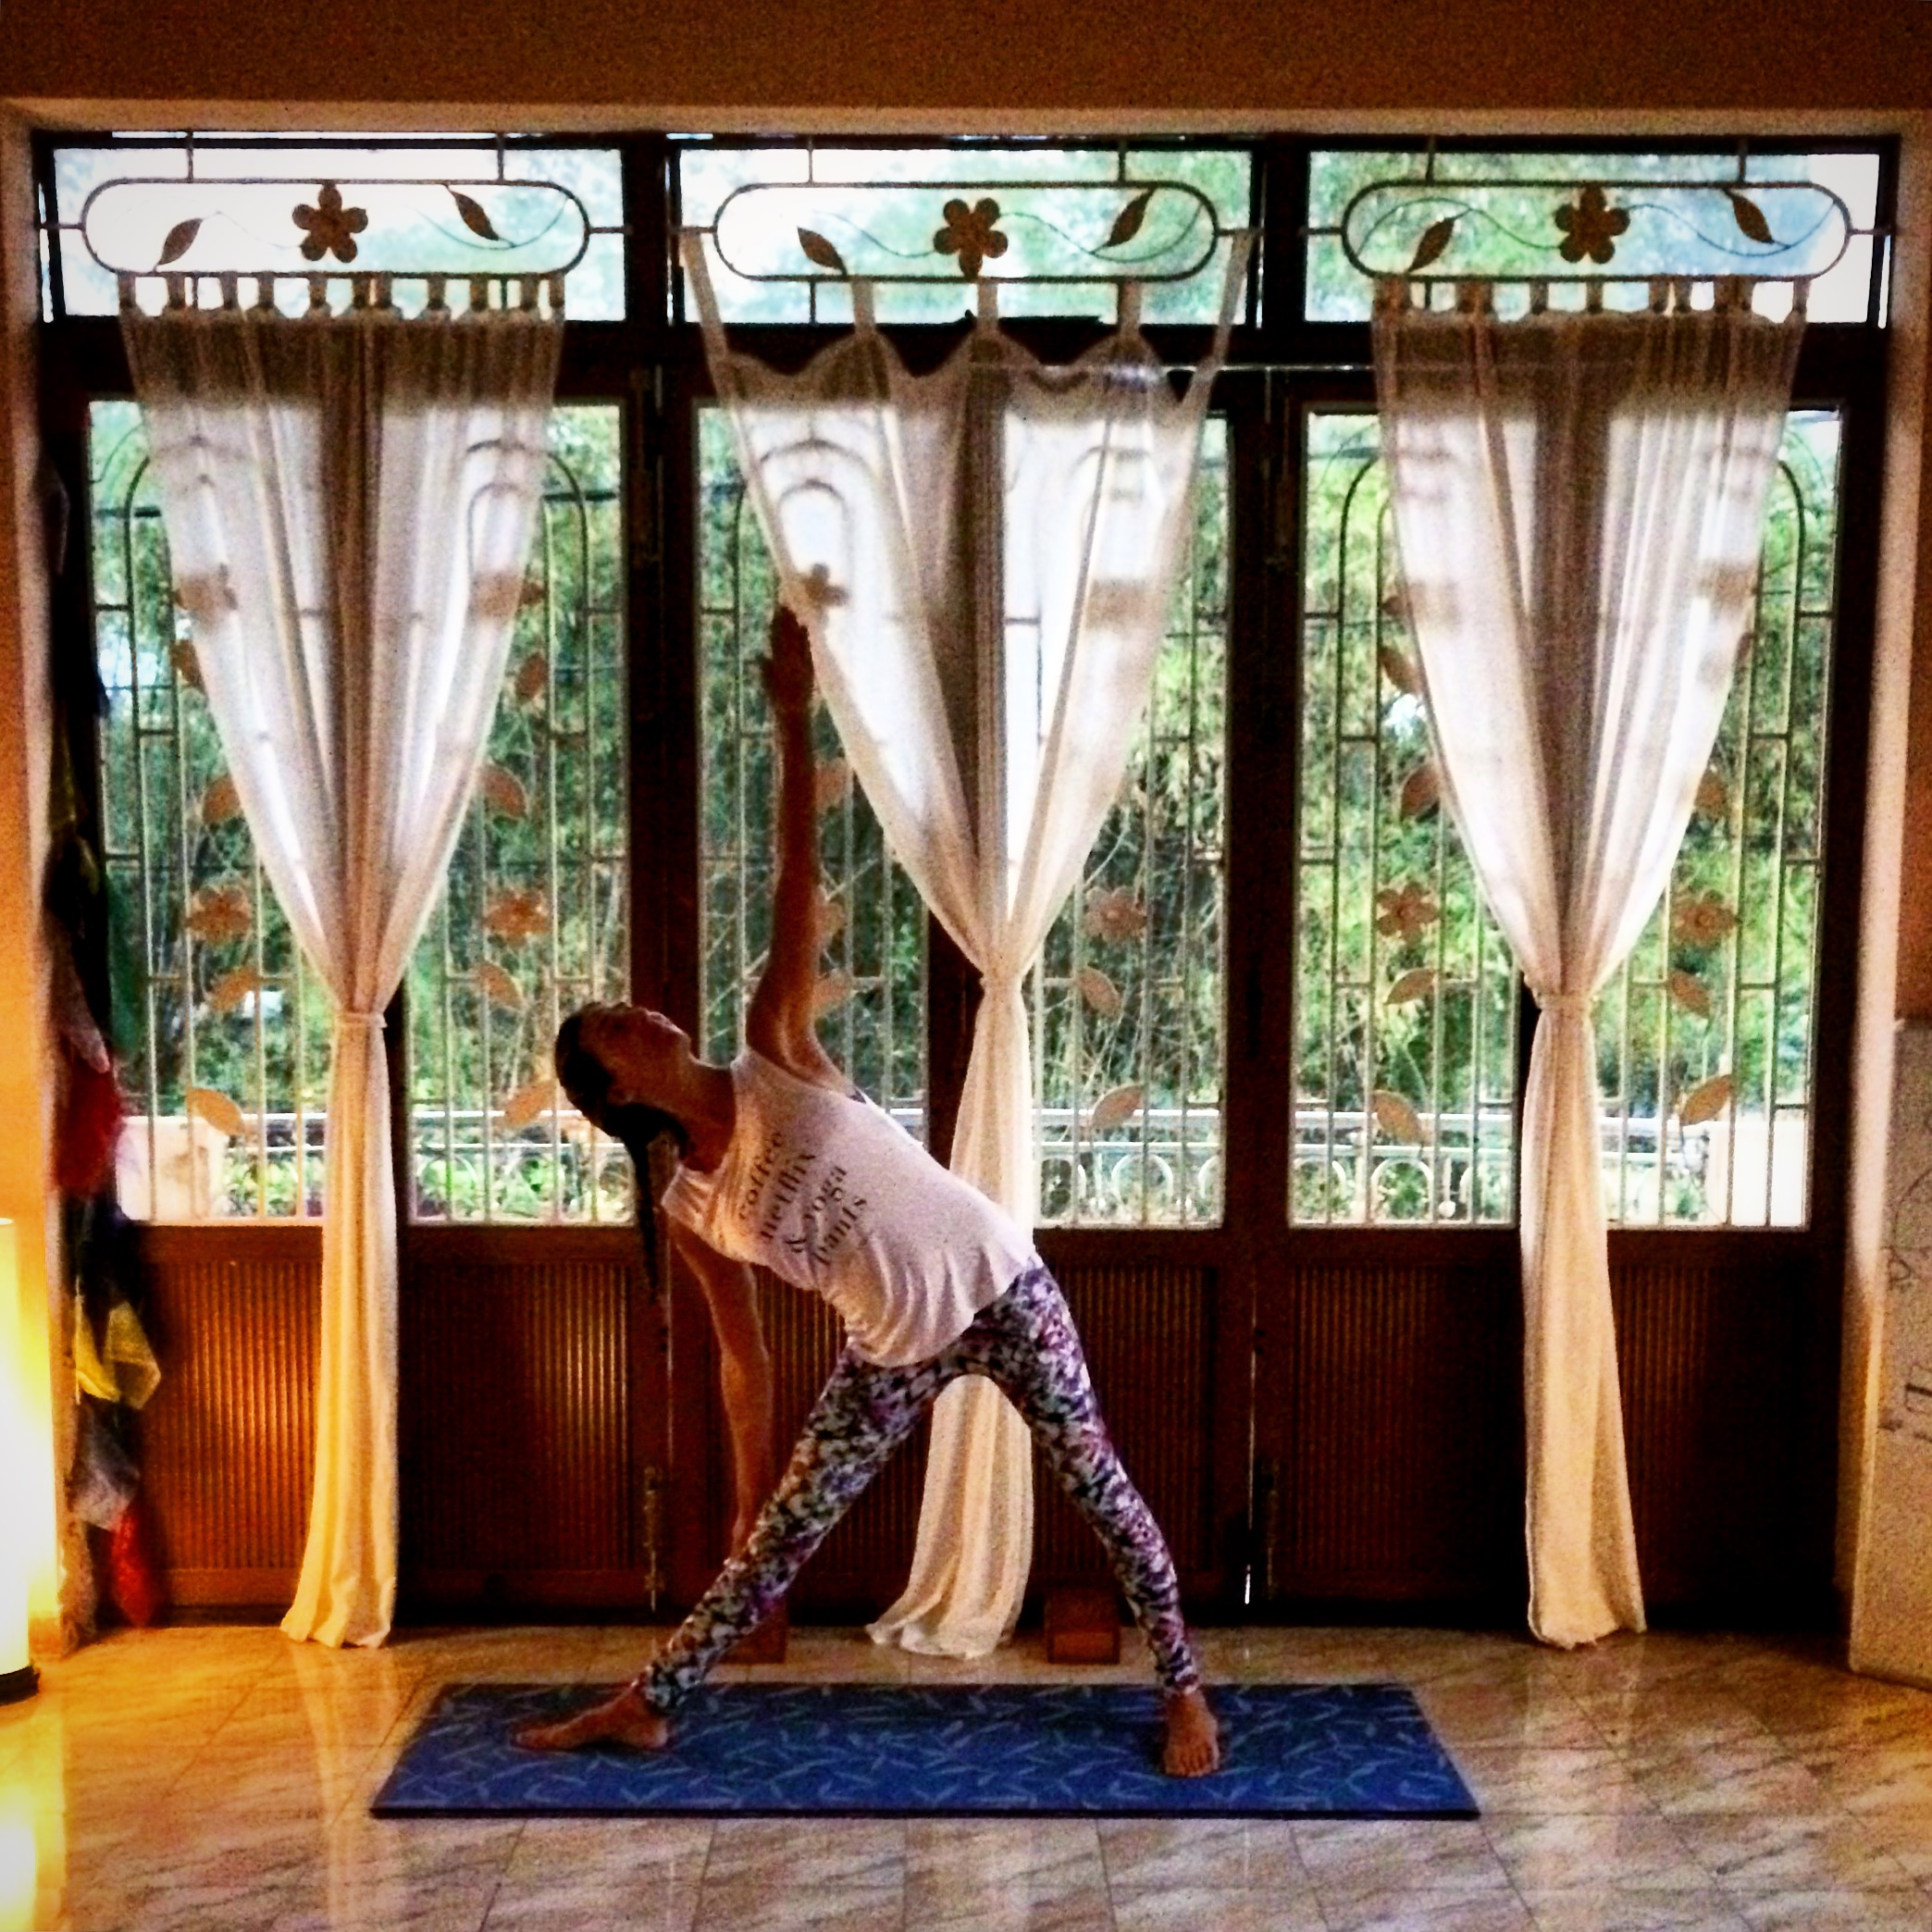 Yoga time at Nomad Yoga in Hoi An, Vietnam.